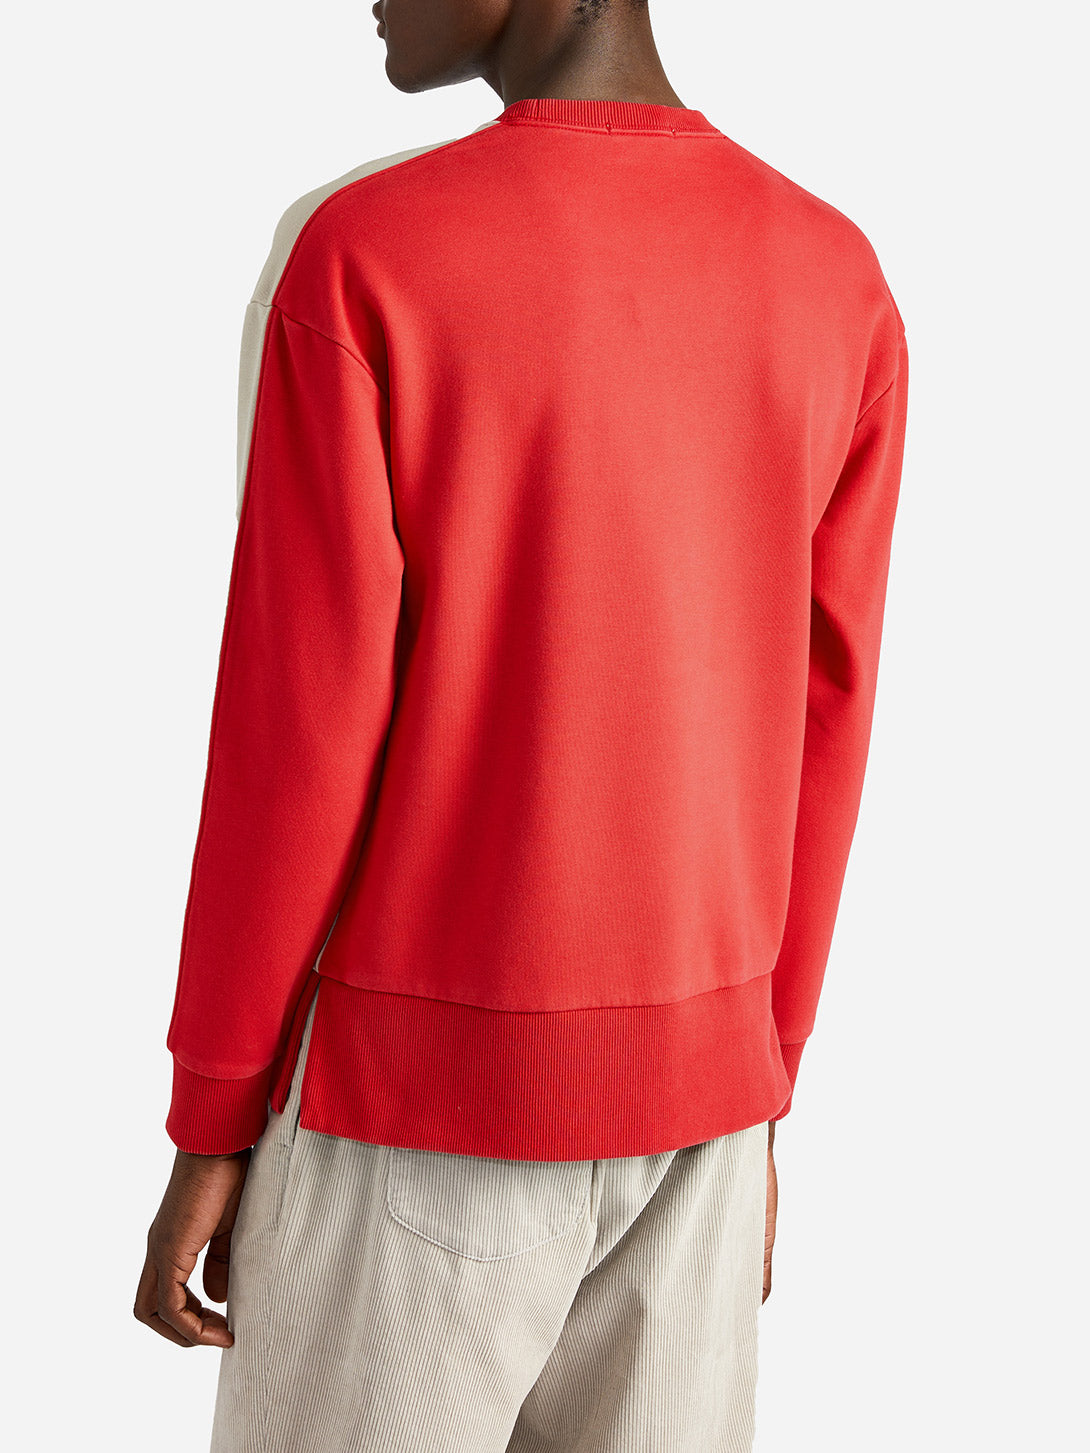 ISSA SWEATSHIRT RED - ONS Clothing